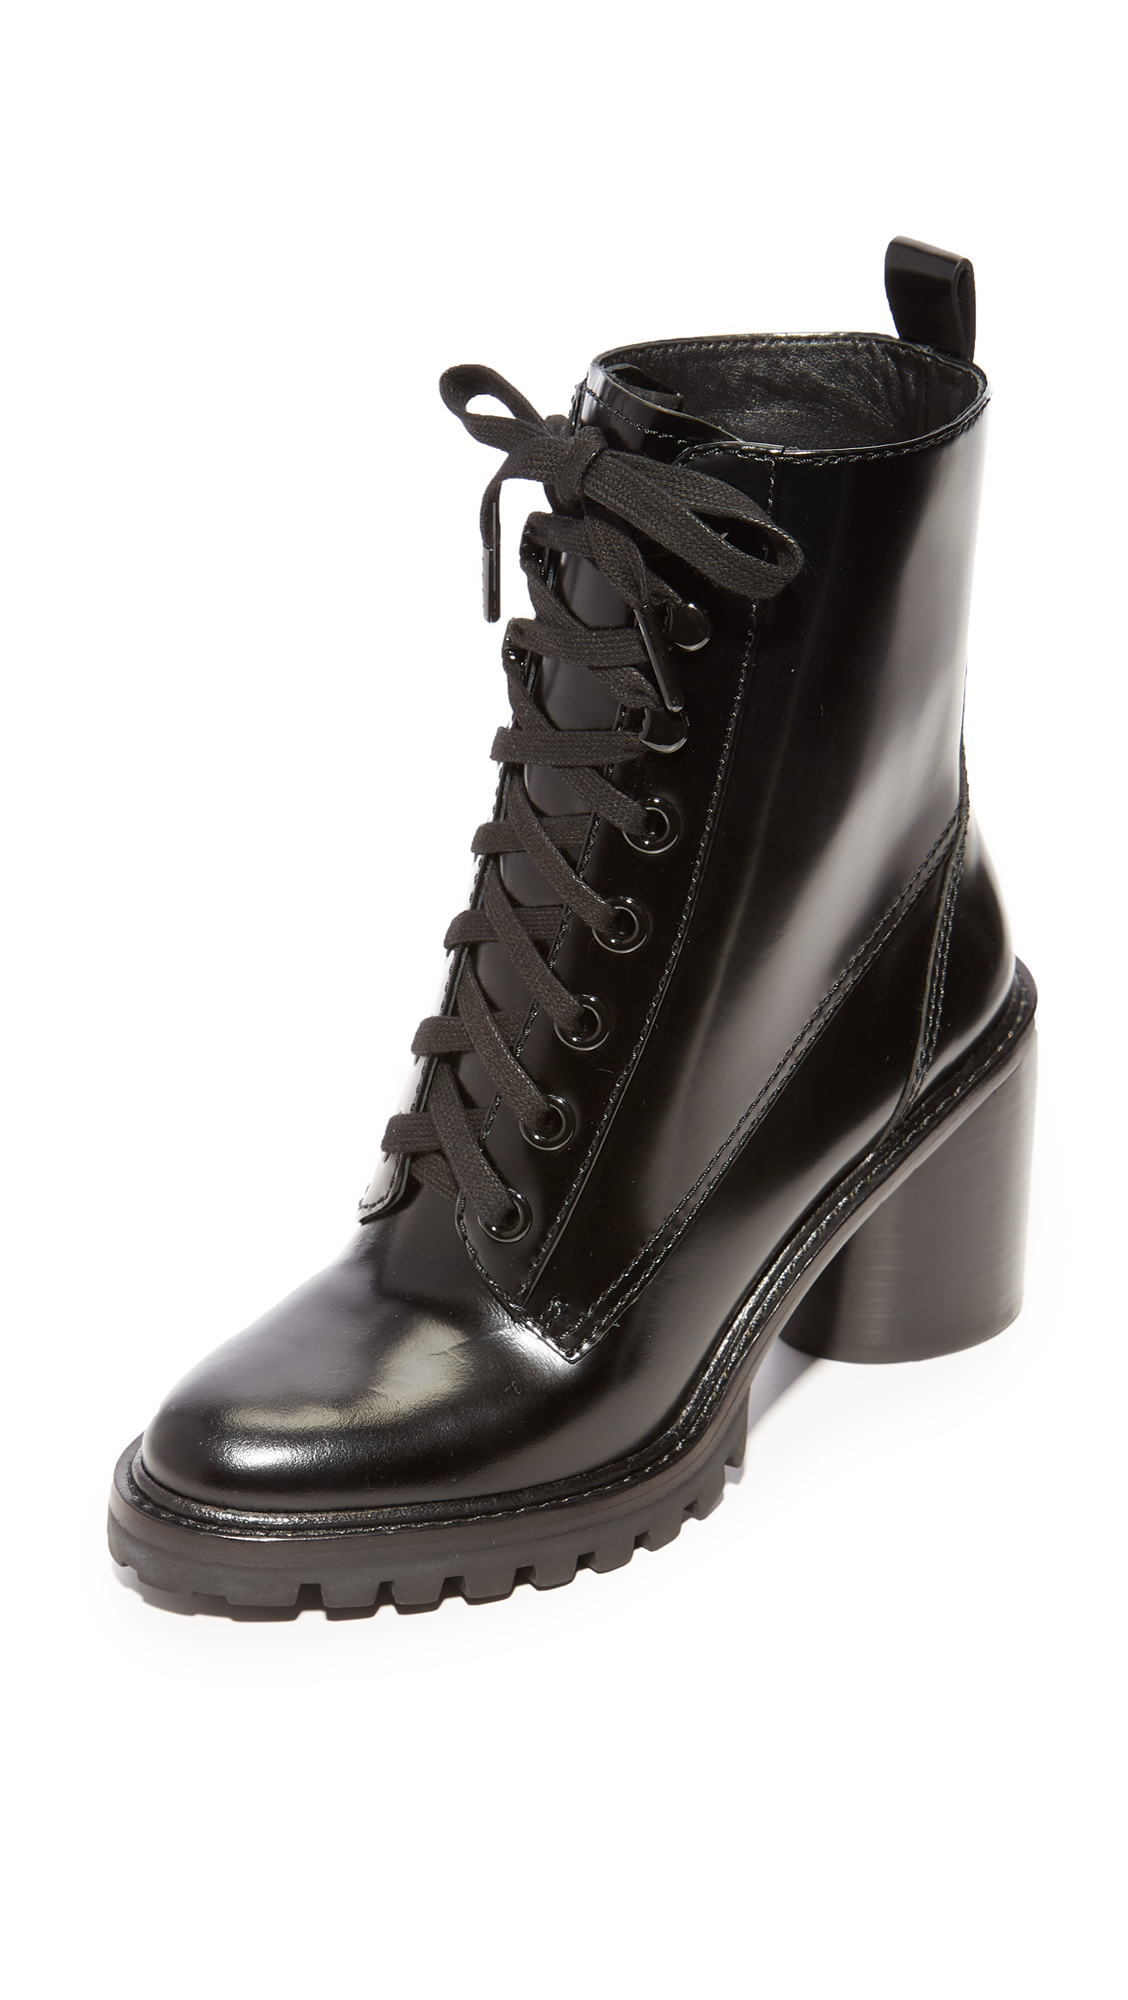 Marc Jacobs Ryder Lace Up Ankle Boots - Black